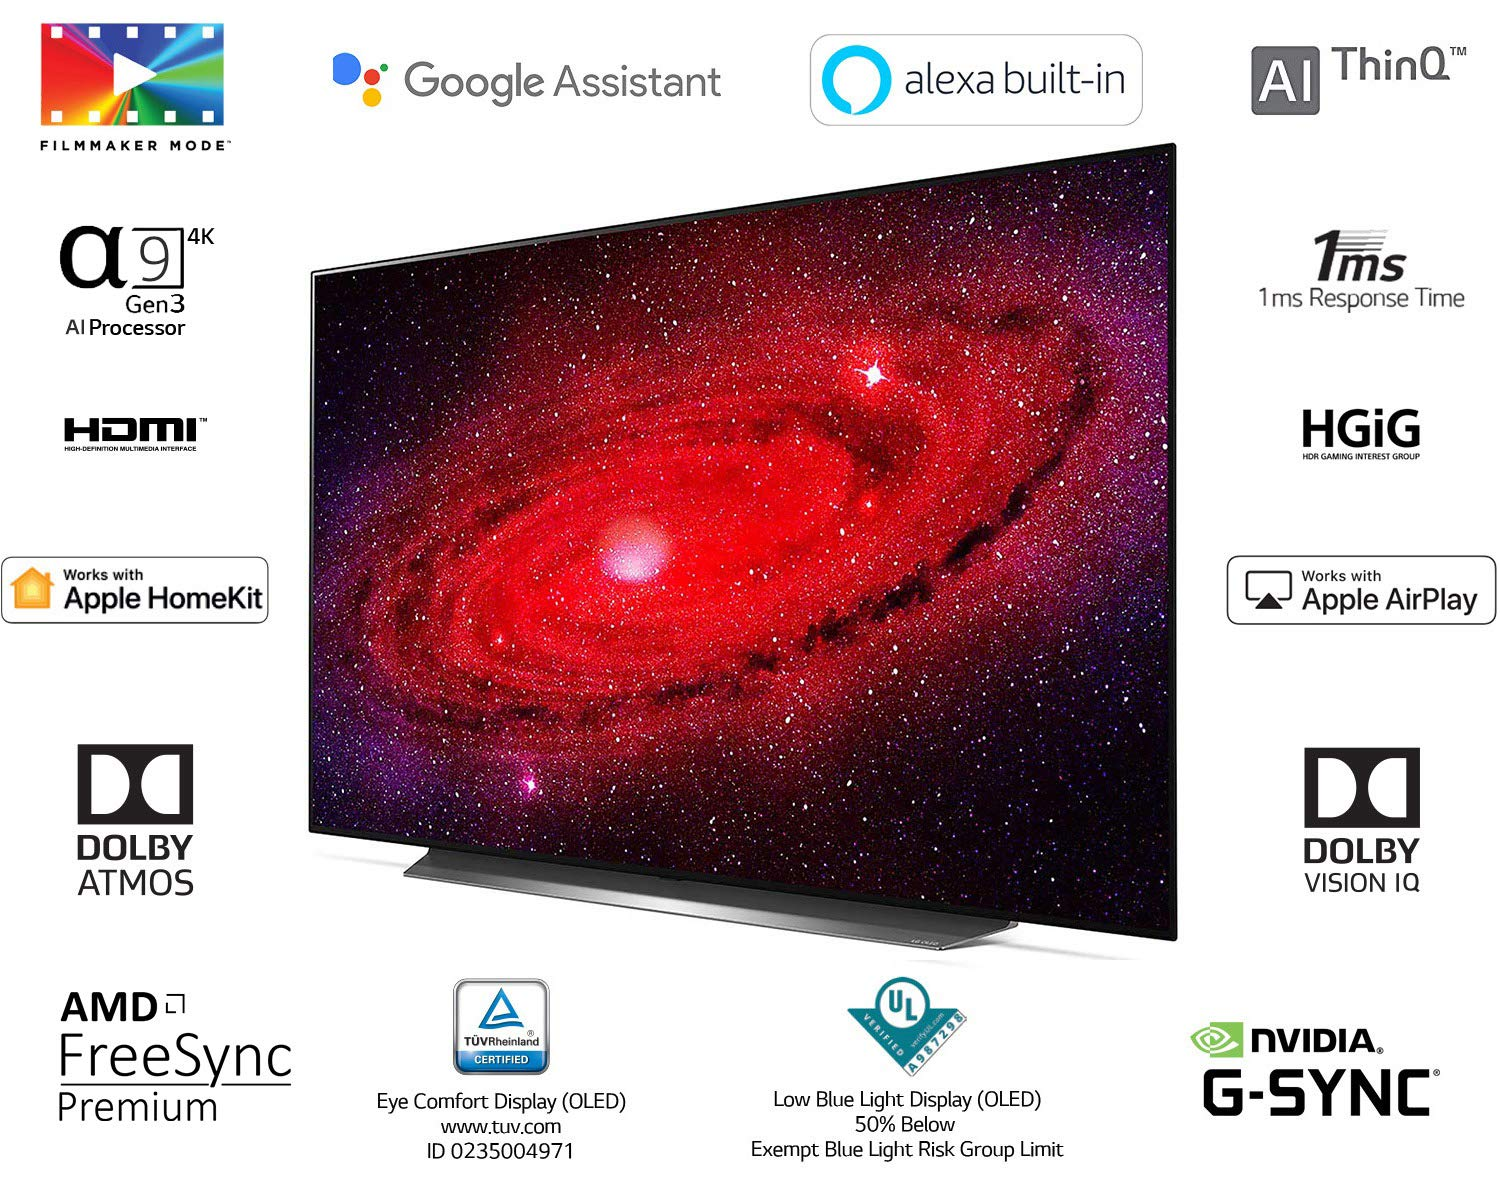 LG 65CXPTA OLED TV - Best 65 inch TVs in India - Best Picture Quality